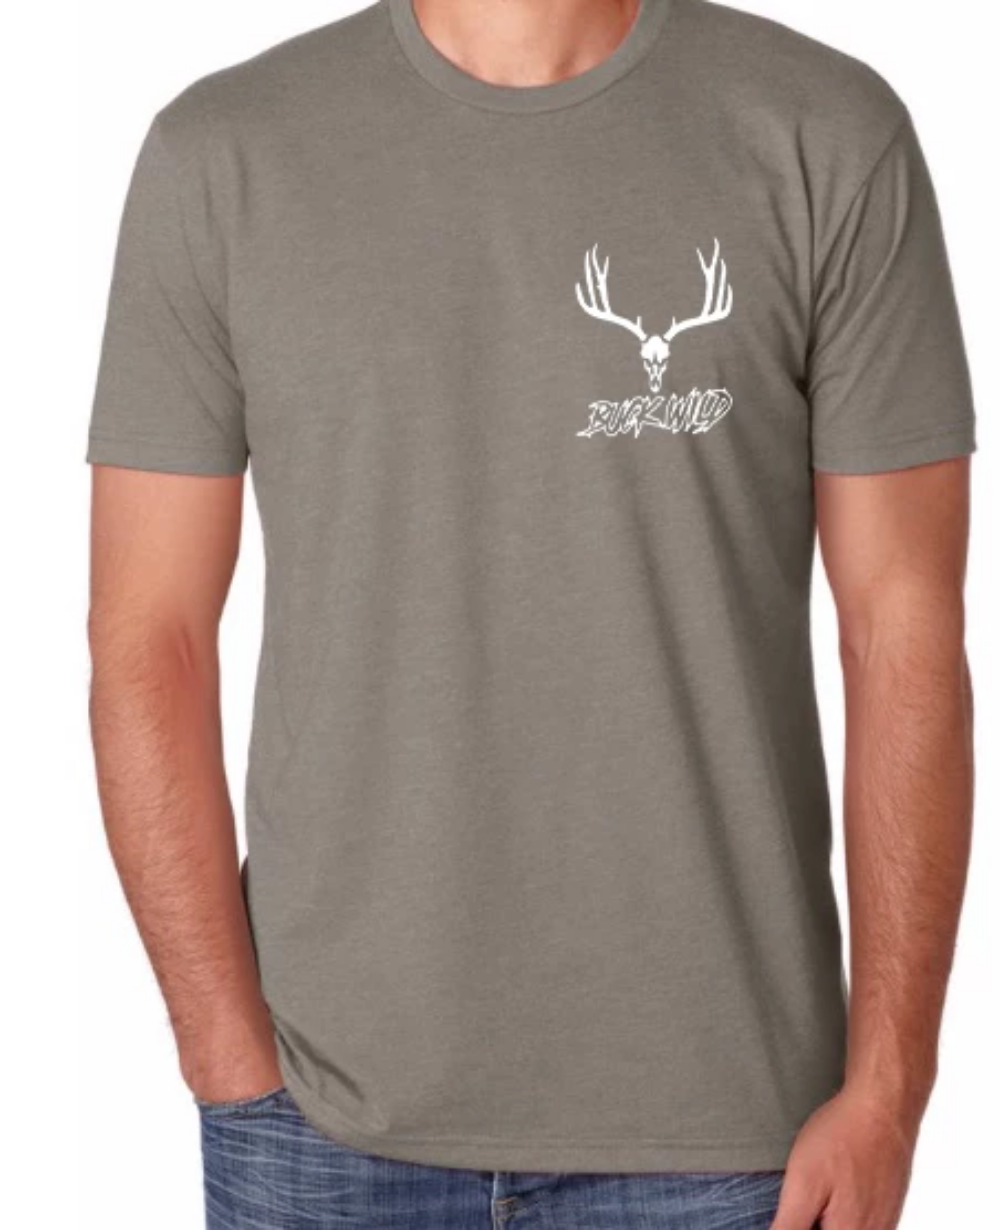 Muley T-Shirt - Dirty Doe & Buck Wild ,hunting apparel,camo,girls that hunt,huntress, buck wild,deer shirts,buck shirts,country shirt,country girl shirts, amazon,cabelas,bass pro shop,sportmans,